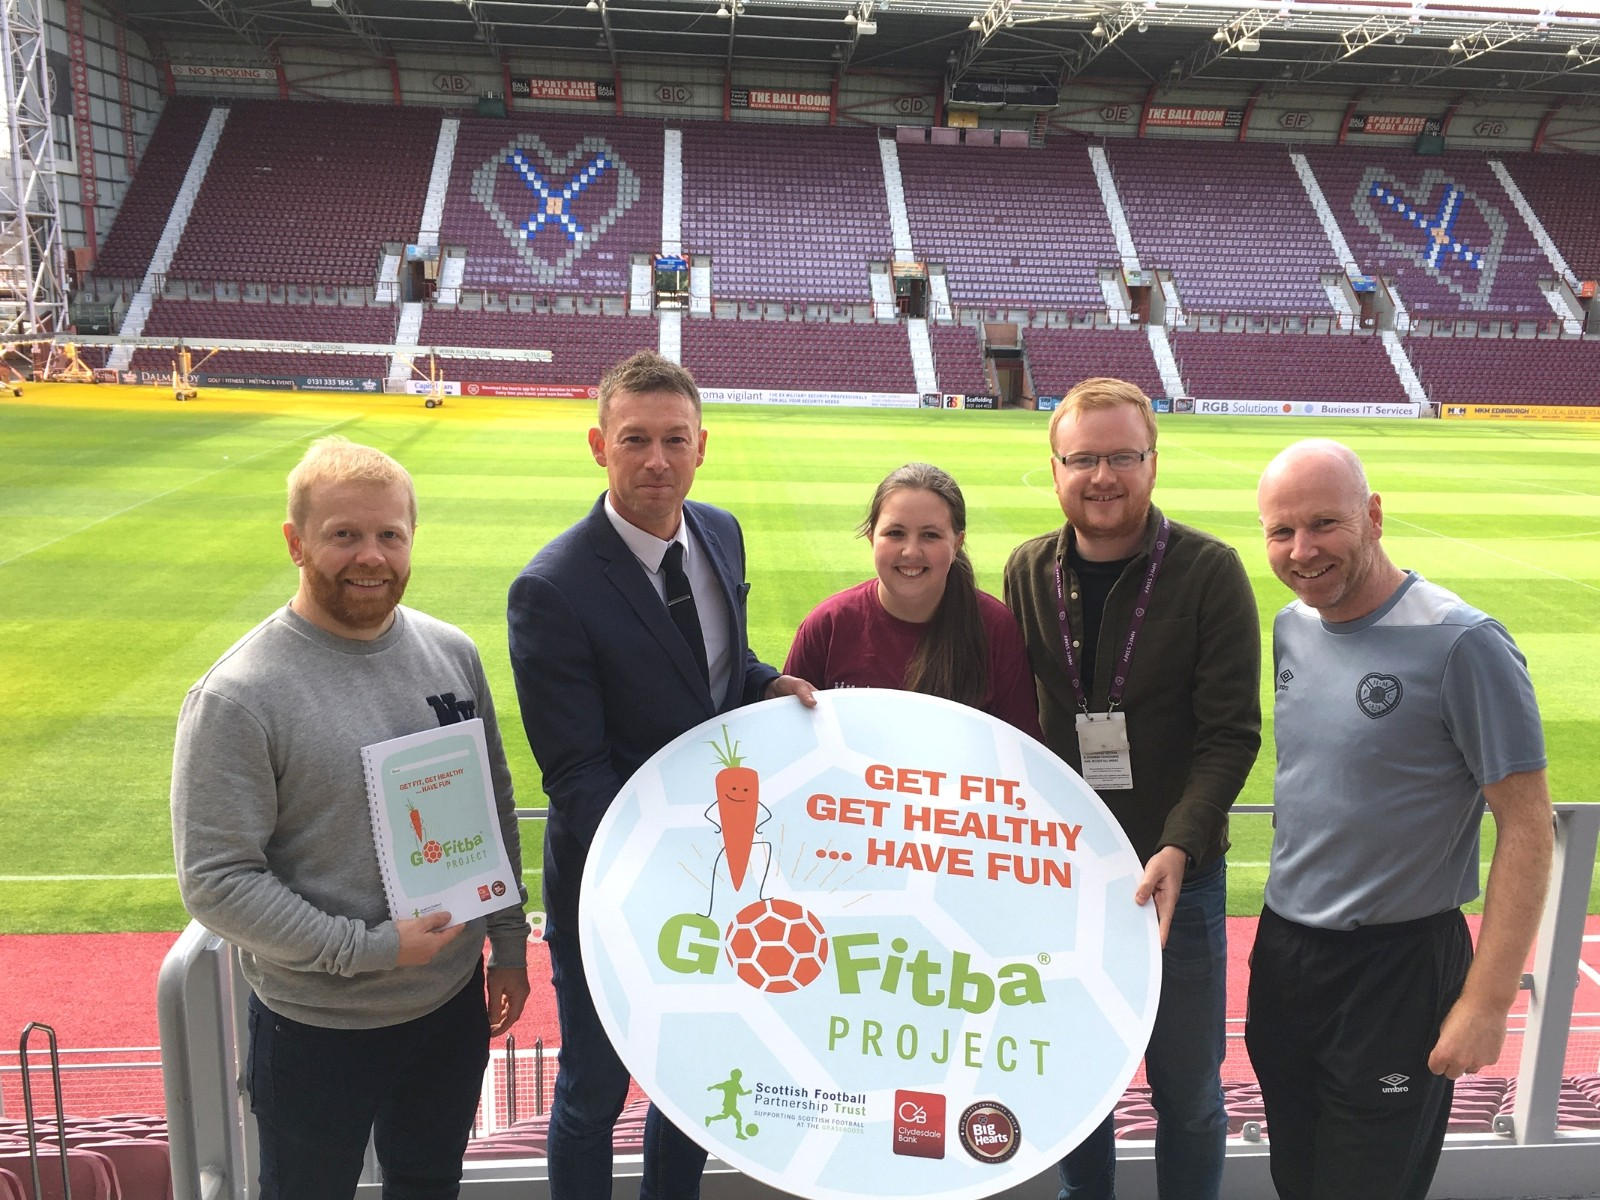 » GoFitba: Big Hearts leading health & wellbeing project in Gorgie/Dalry